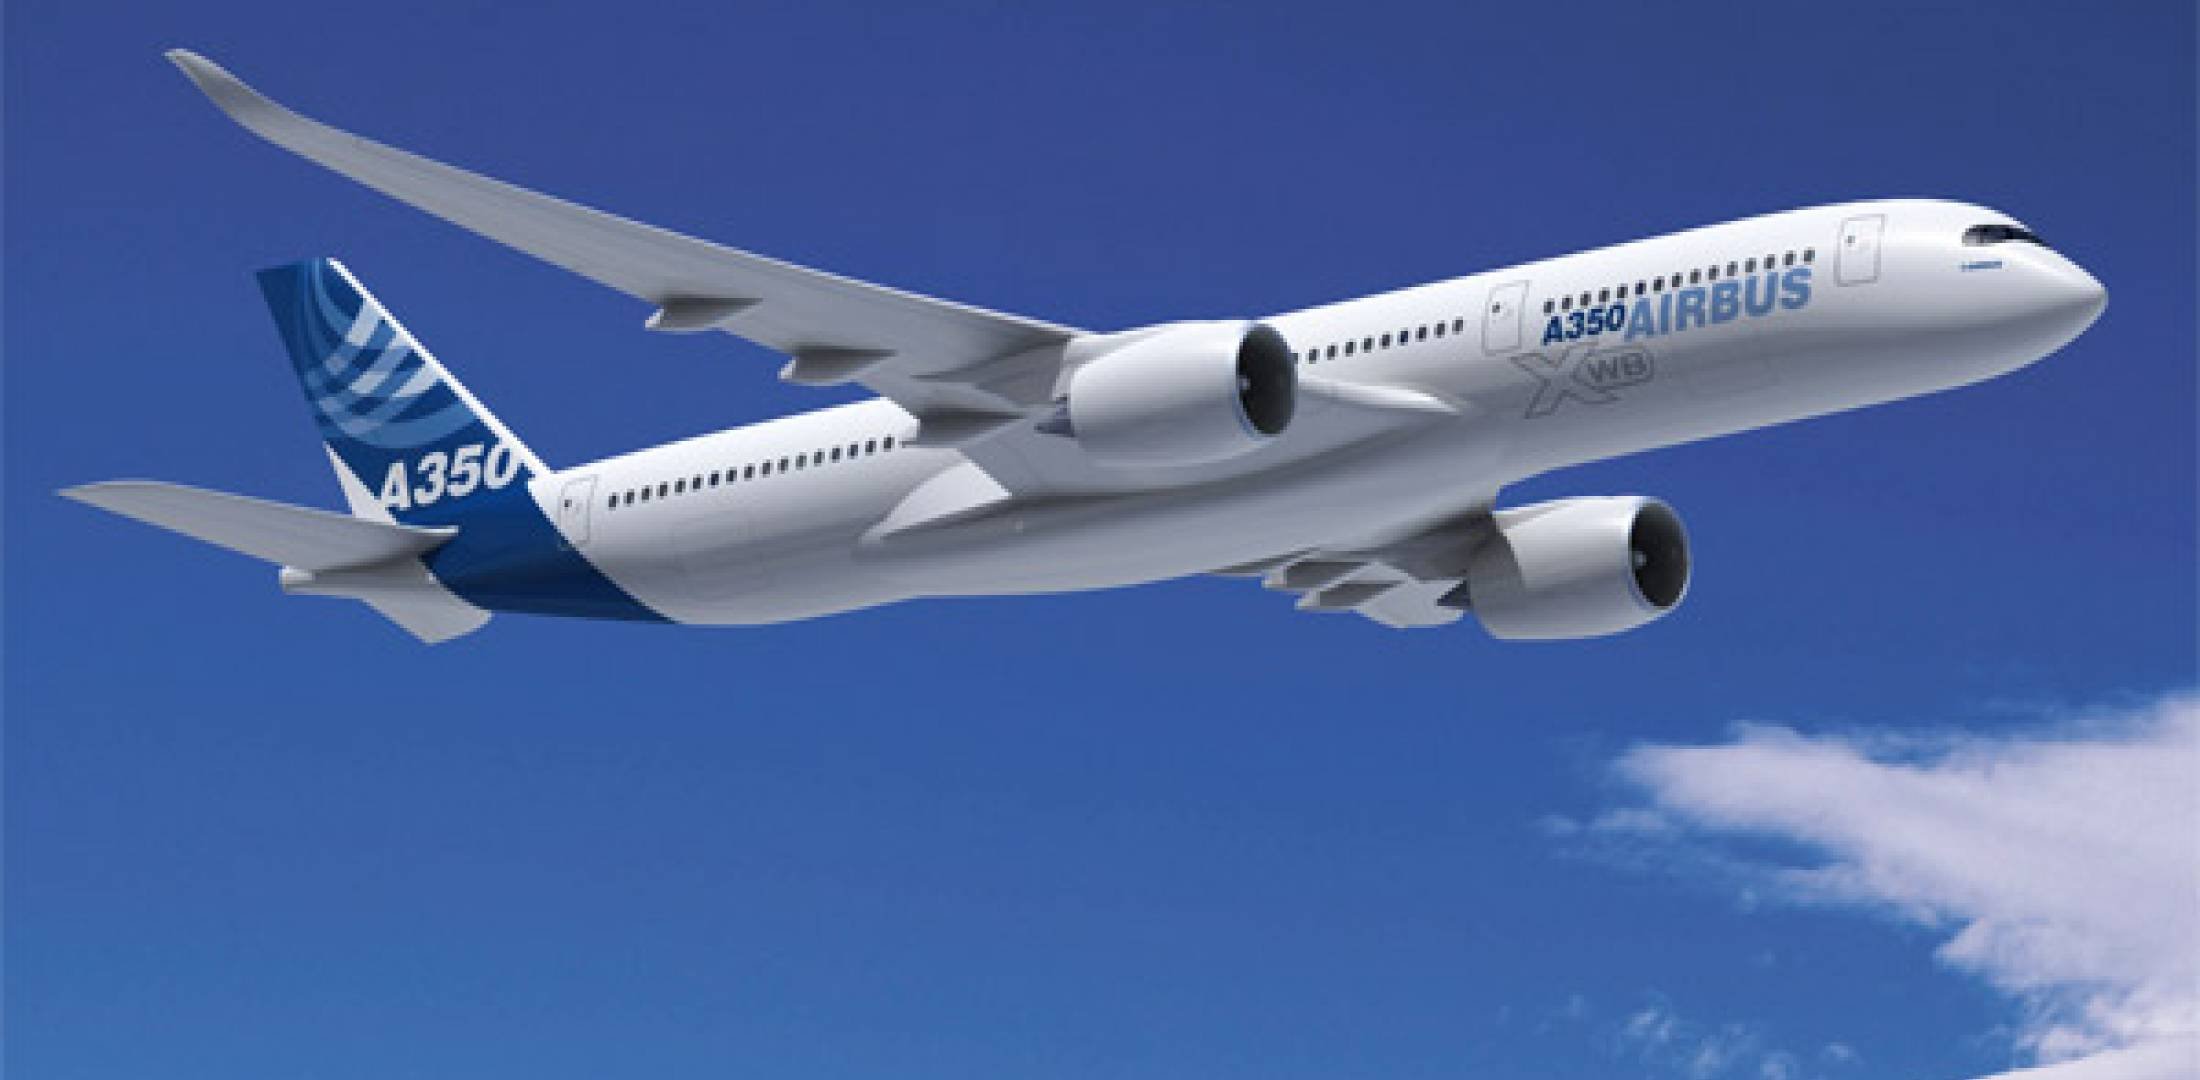 Paris 2011: Airbus Boosts A350-1000 To Take on Boeing 777 | Air